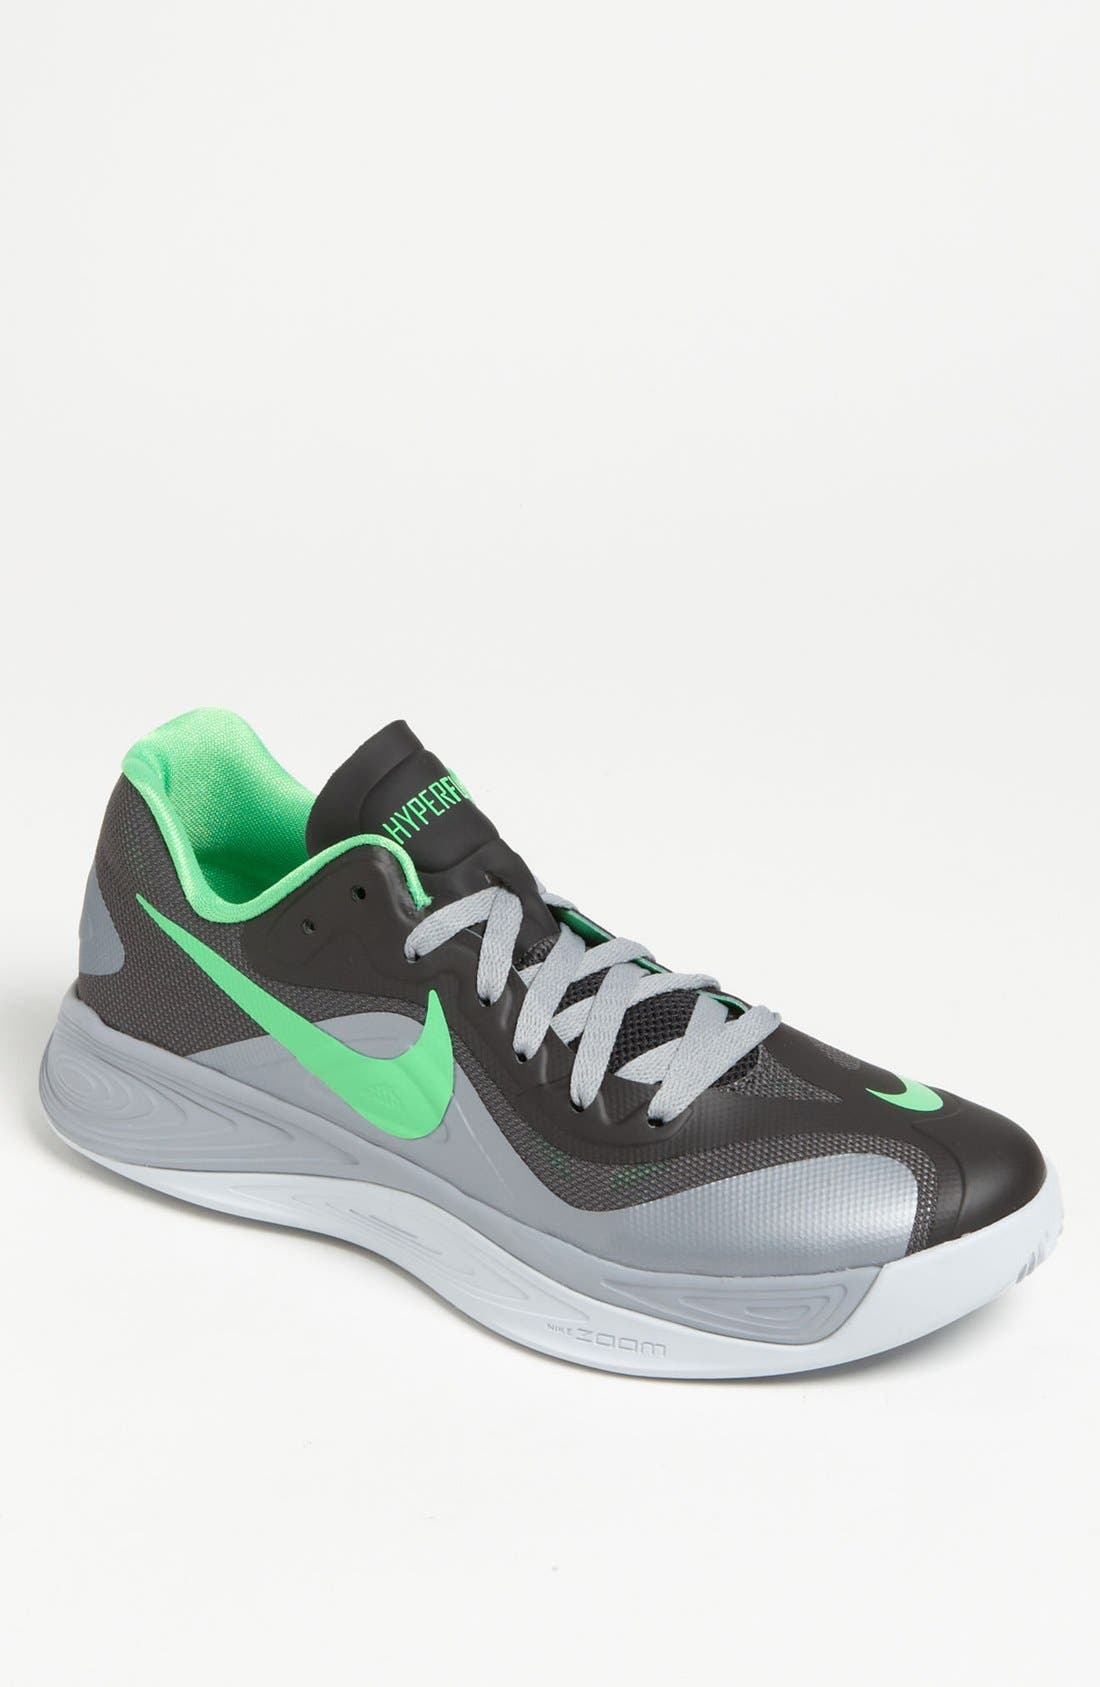 NIKE 'Hyperfuse Low' Basketball Shoe, Main, color, 004